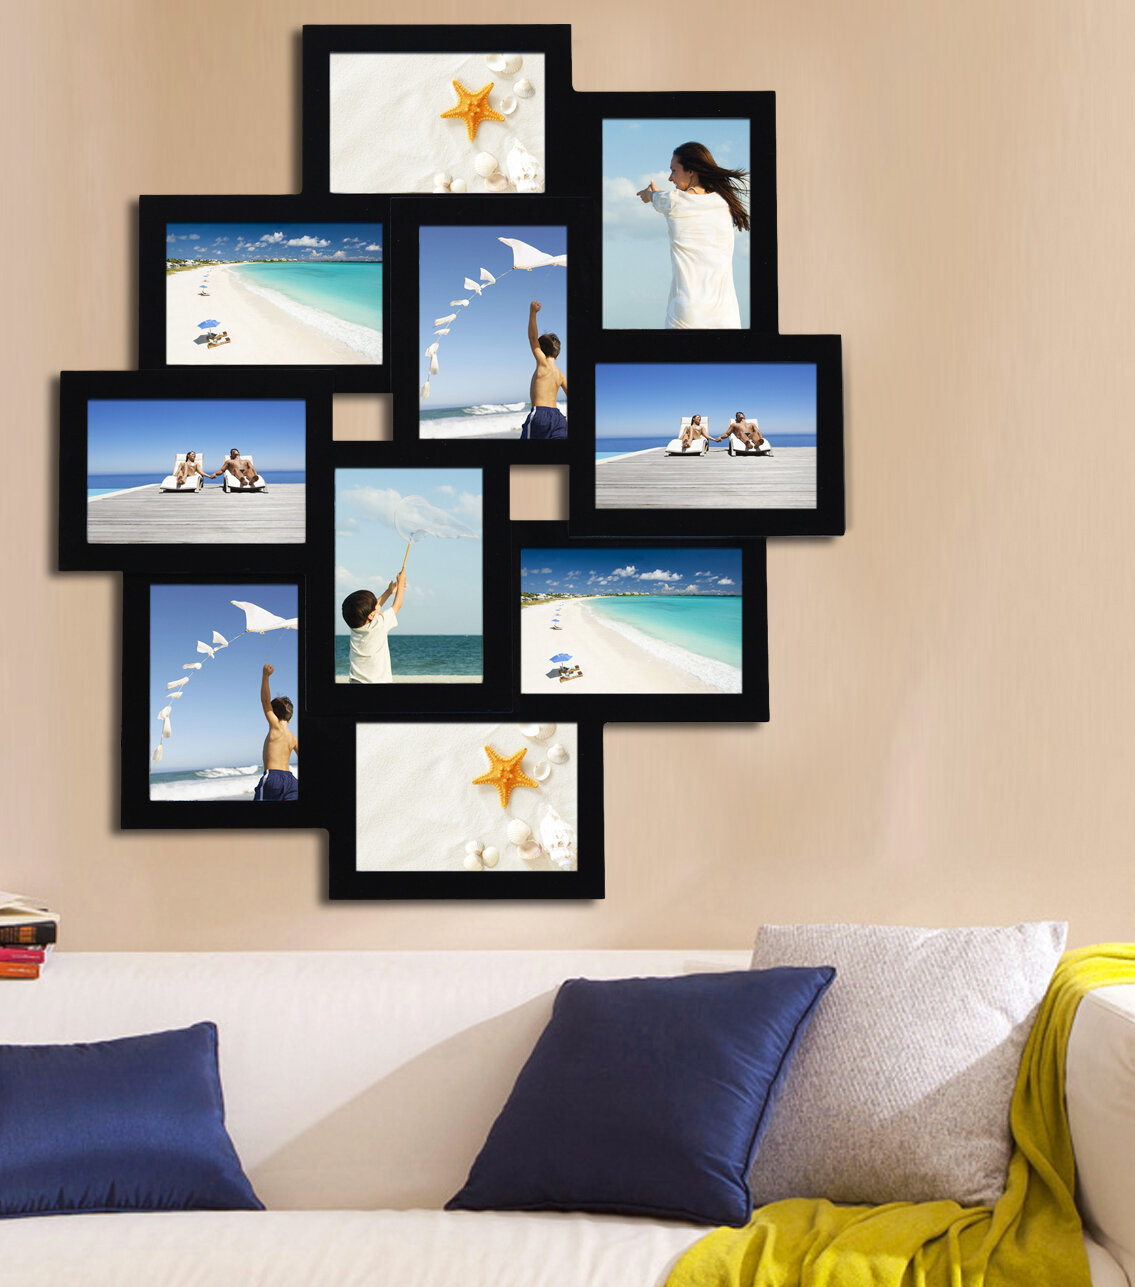 Adecotrading 10 Opening Wood Photo Collage Wall Hanging Picture